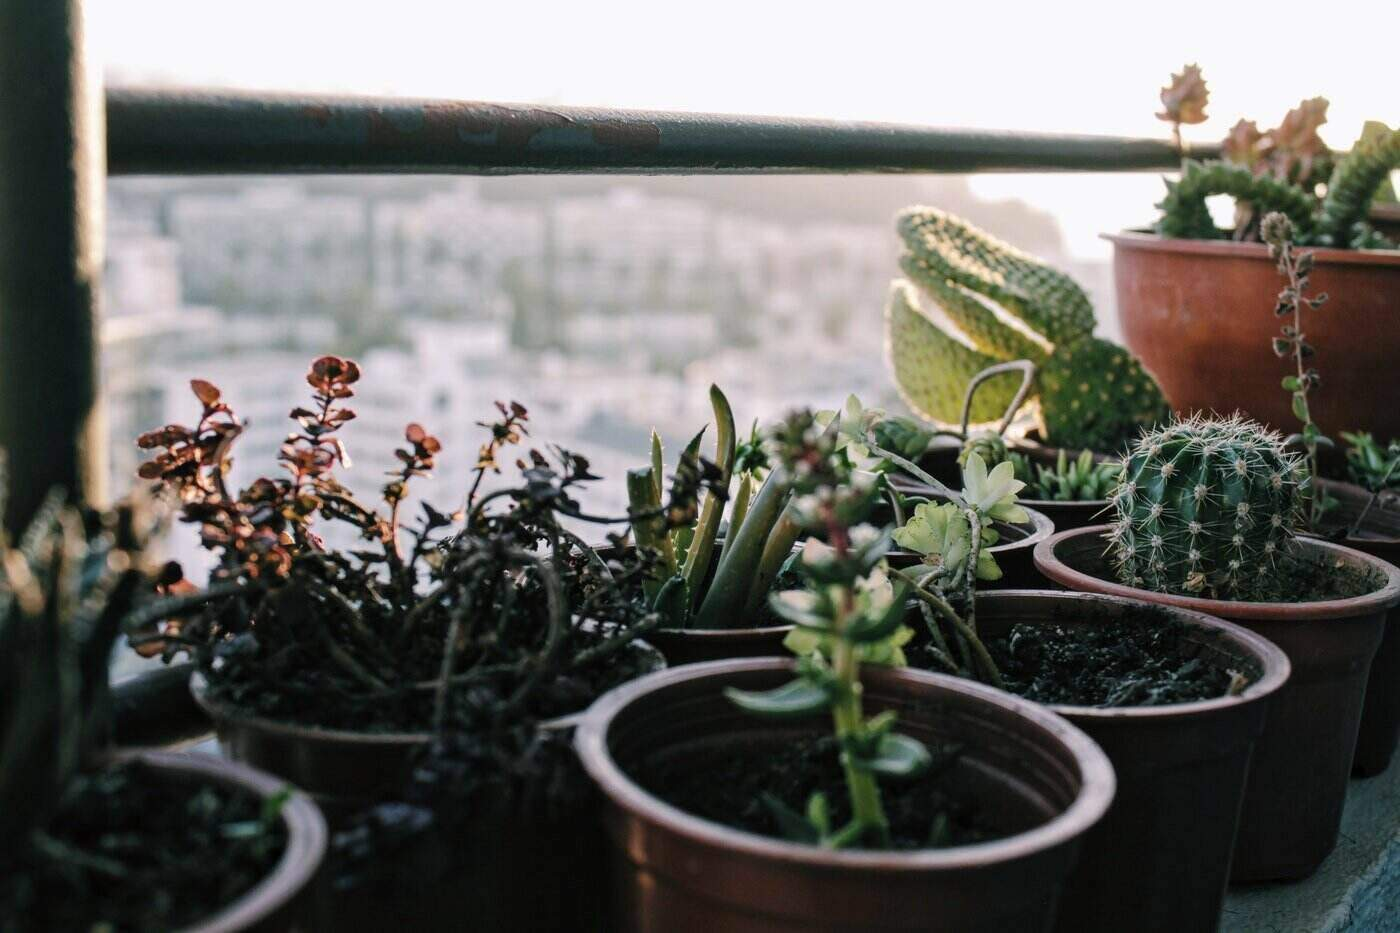 succulents in pots by large window - how to grow and care for succulents indoors